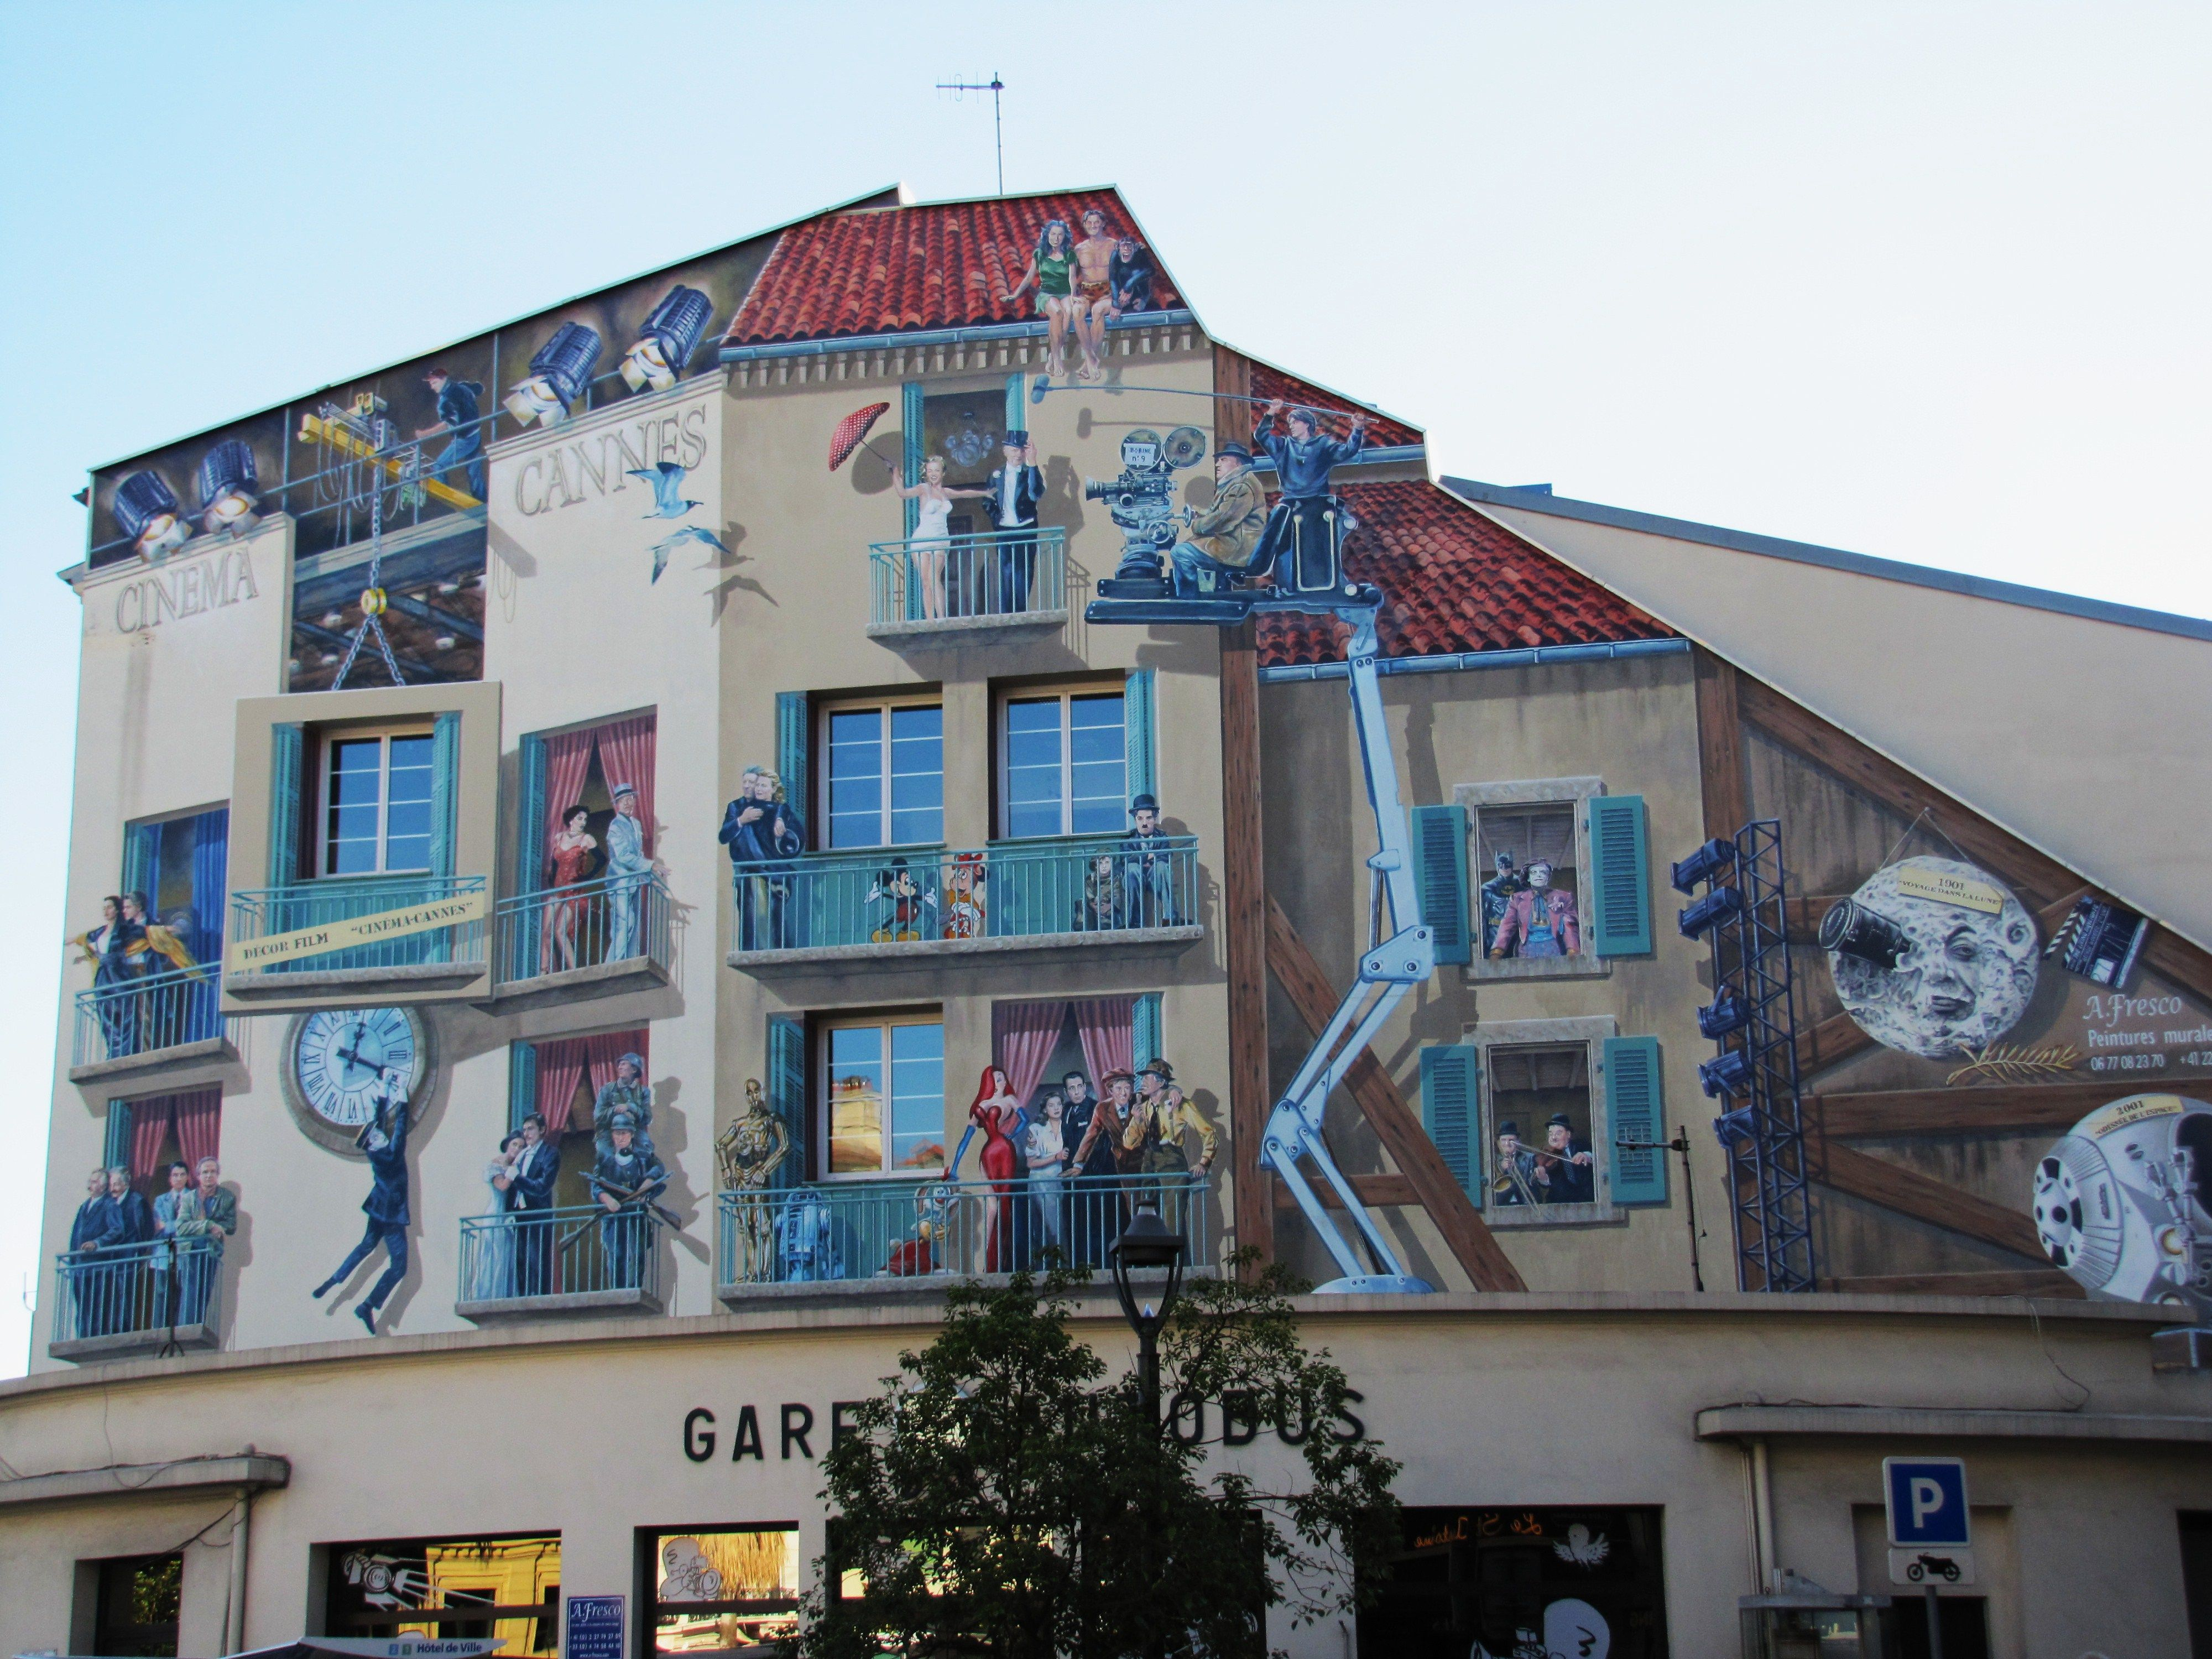 Cool mural on building in cannes france travel pictures for Construction mural